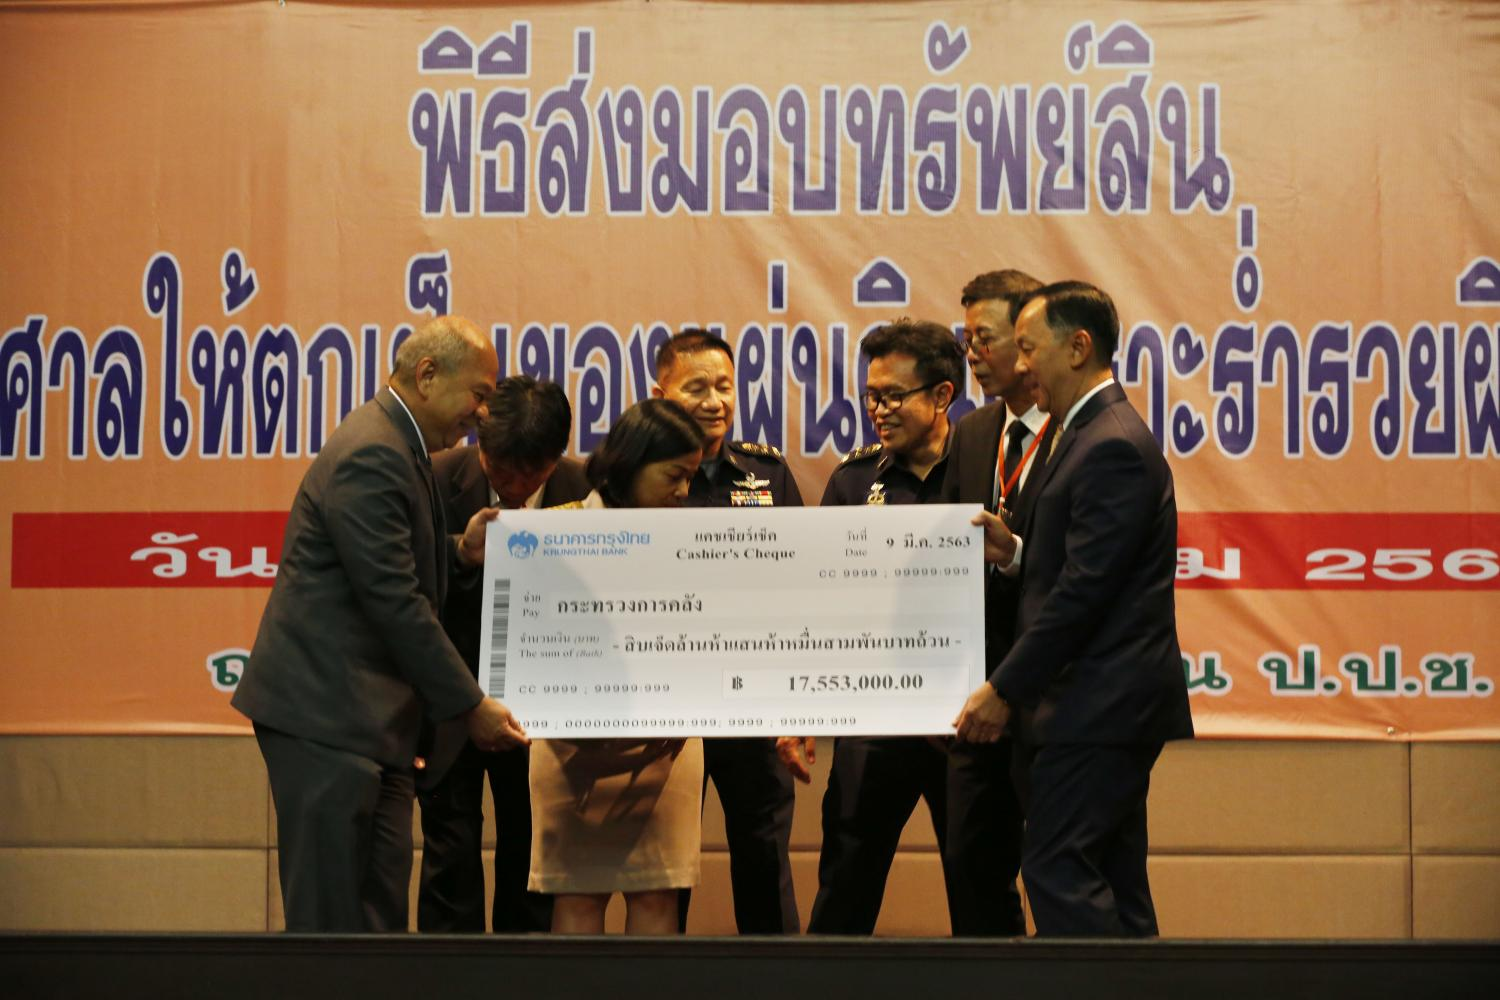 The National Anti-Corruption Commission hands over a cheque worth 17.5 million baht to the Finance Ministry at its office in Nonthaburi. (Photo by Pornprom Satrabhaya)